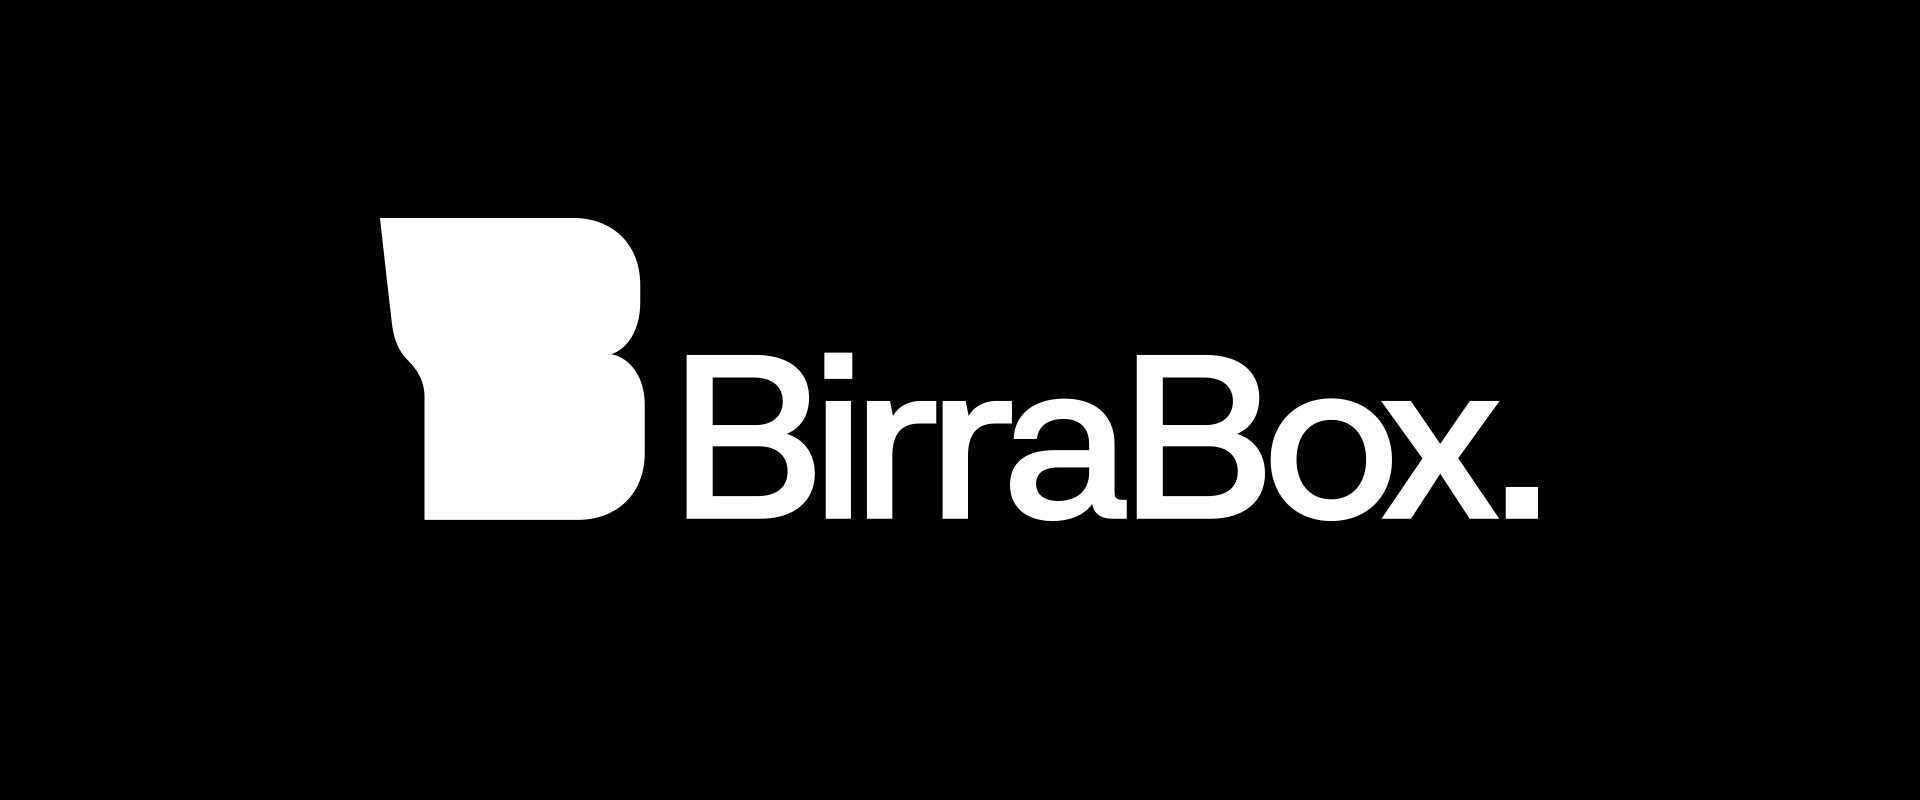 Birrabox_Portada